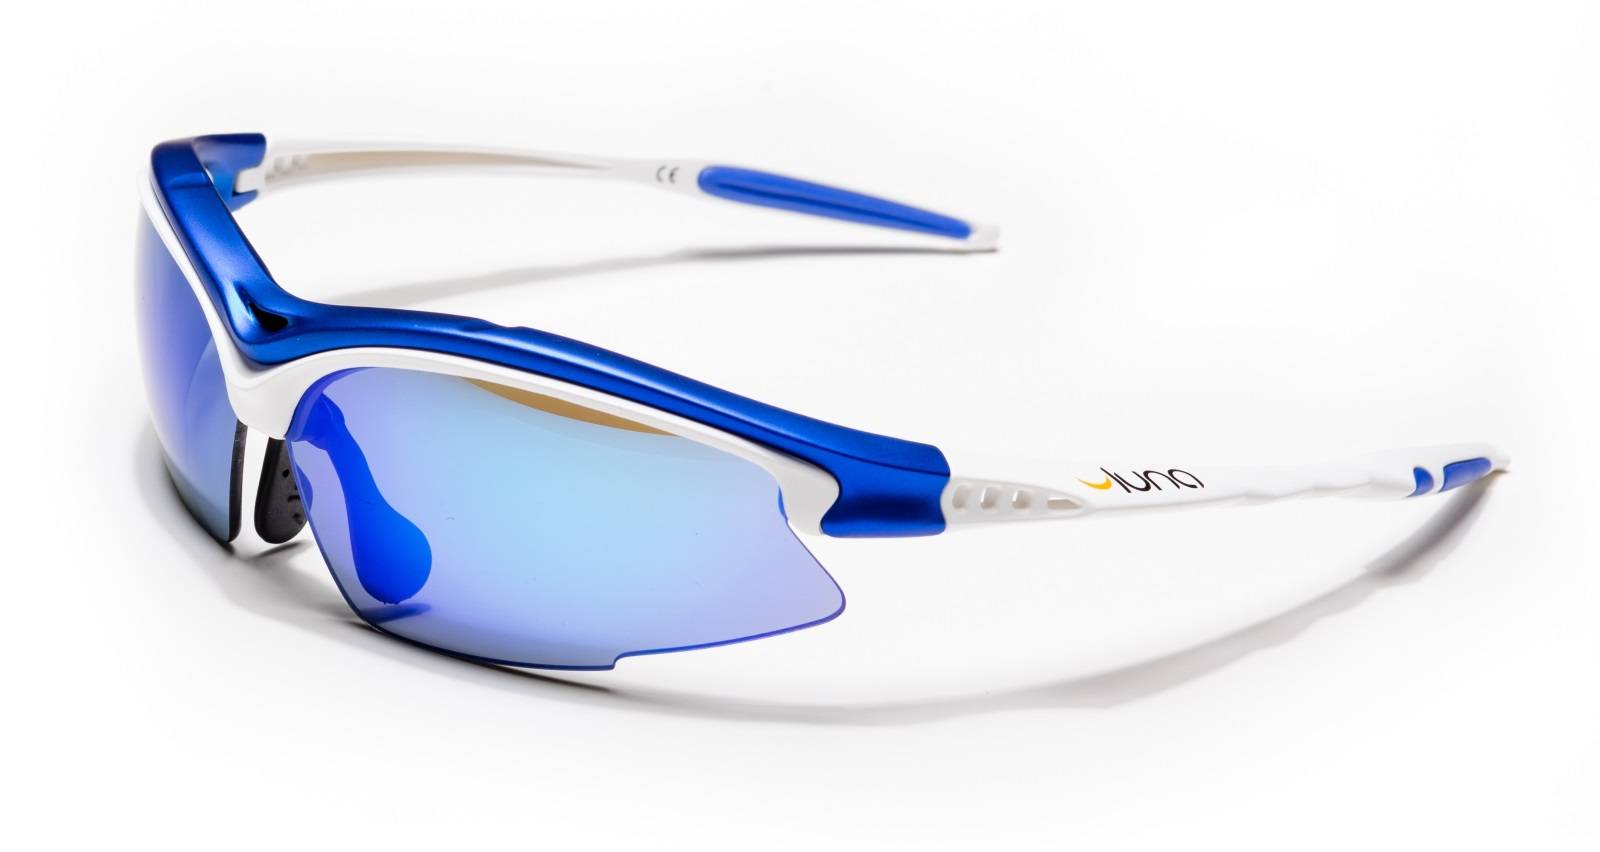 Luna Glasses Luna Sky Running Cycling Sunglasses with Hard Protective Case (Mirrored Blue Lenses, White/Blue Frame) with Gray Interchangeable Lenses